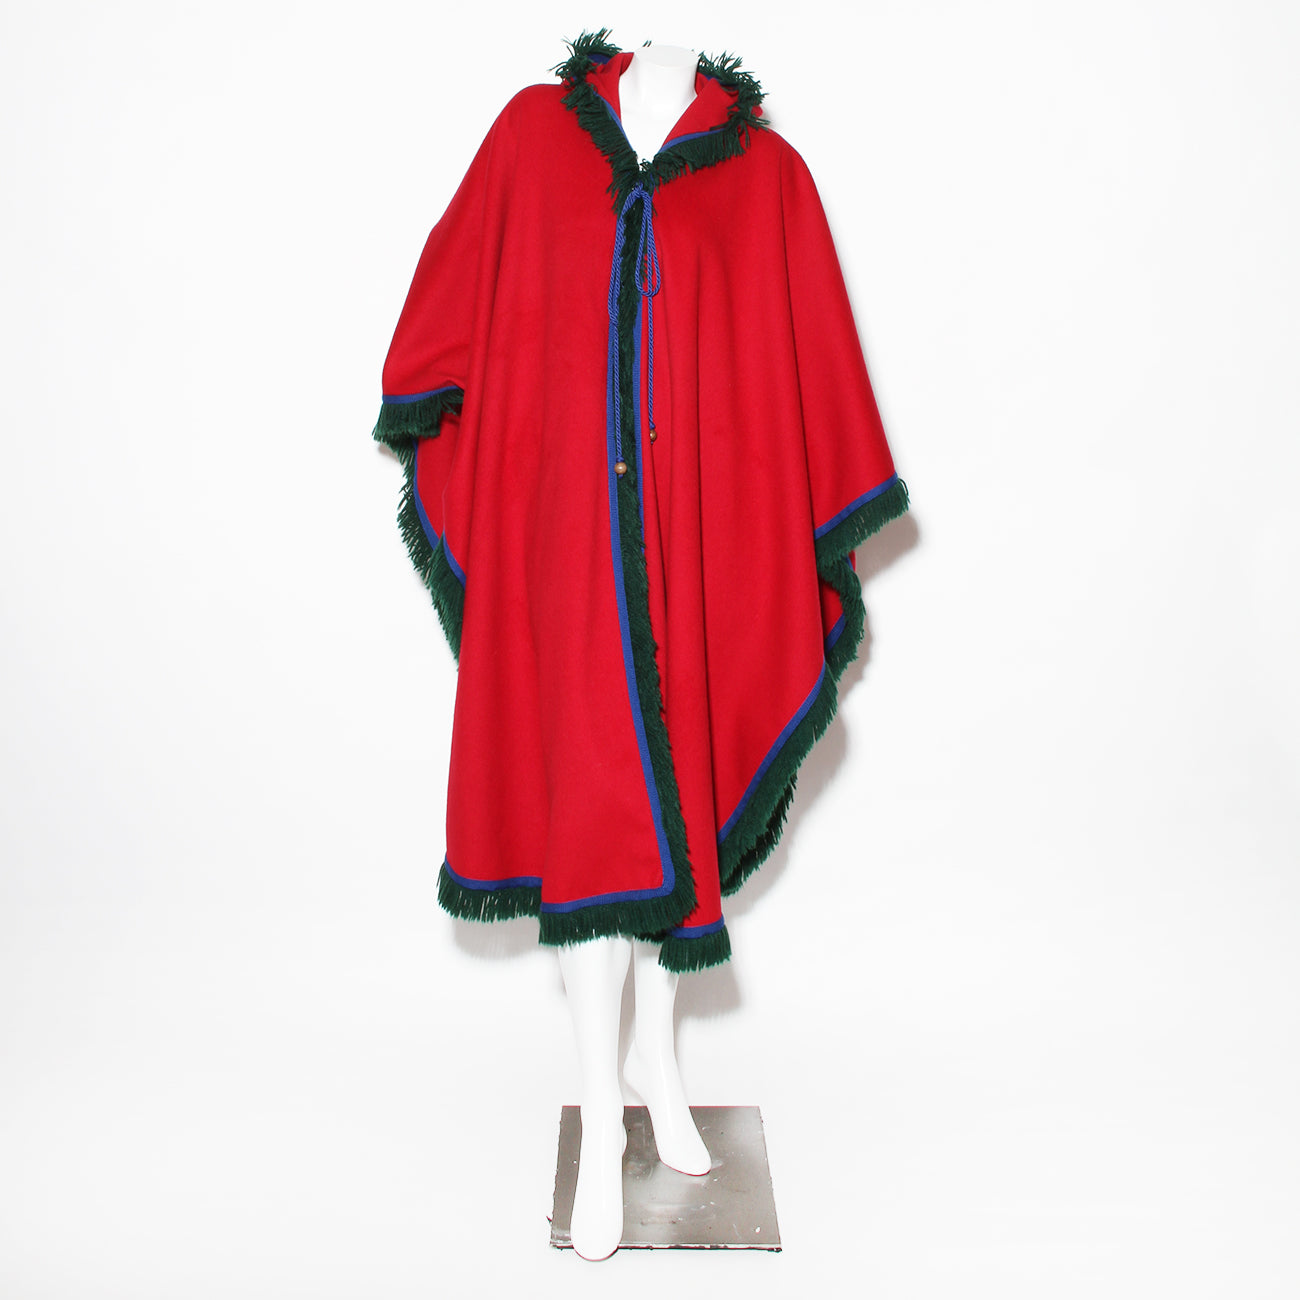 YSL Hooded Wool Cape